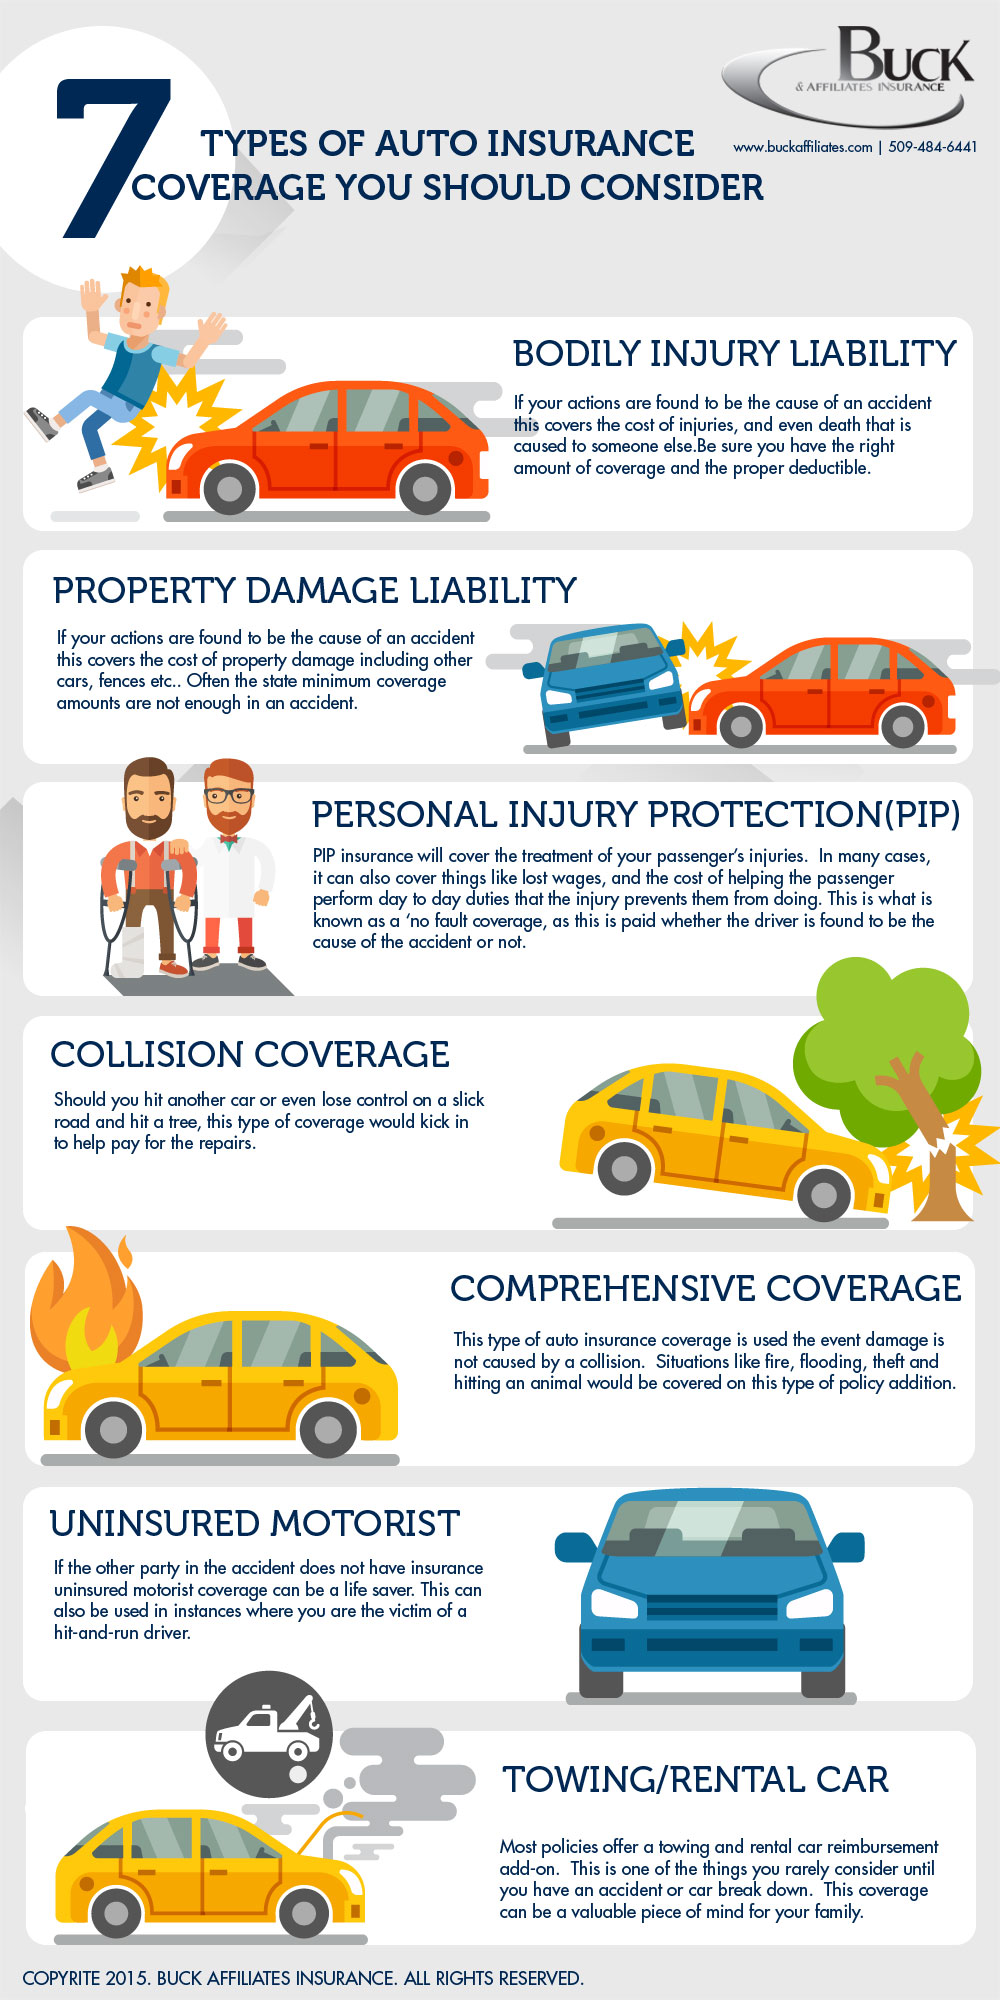 Securing Cheap Car Insurance: Key Factors That Affect Insurance Costs